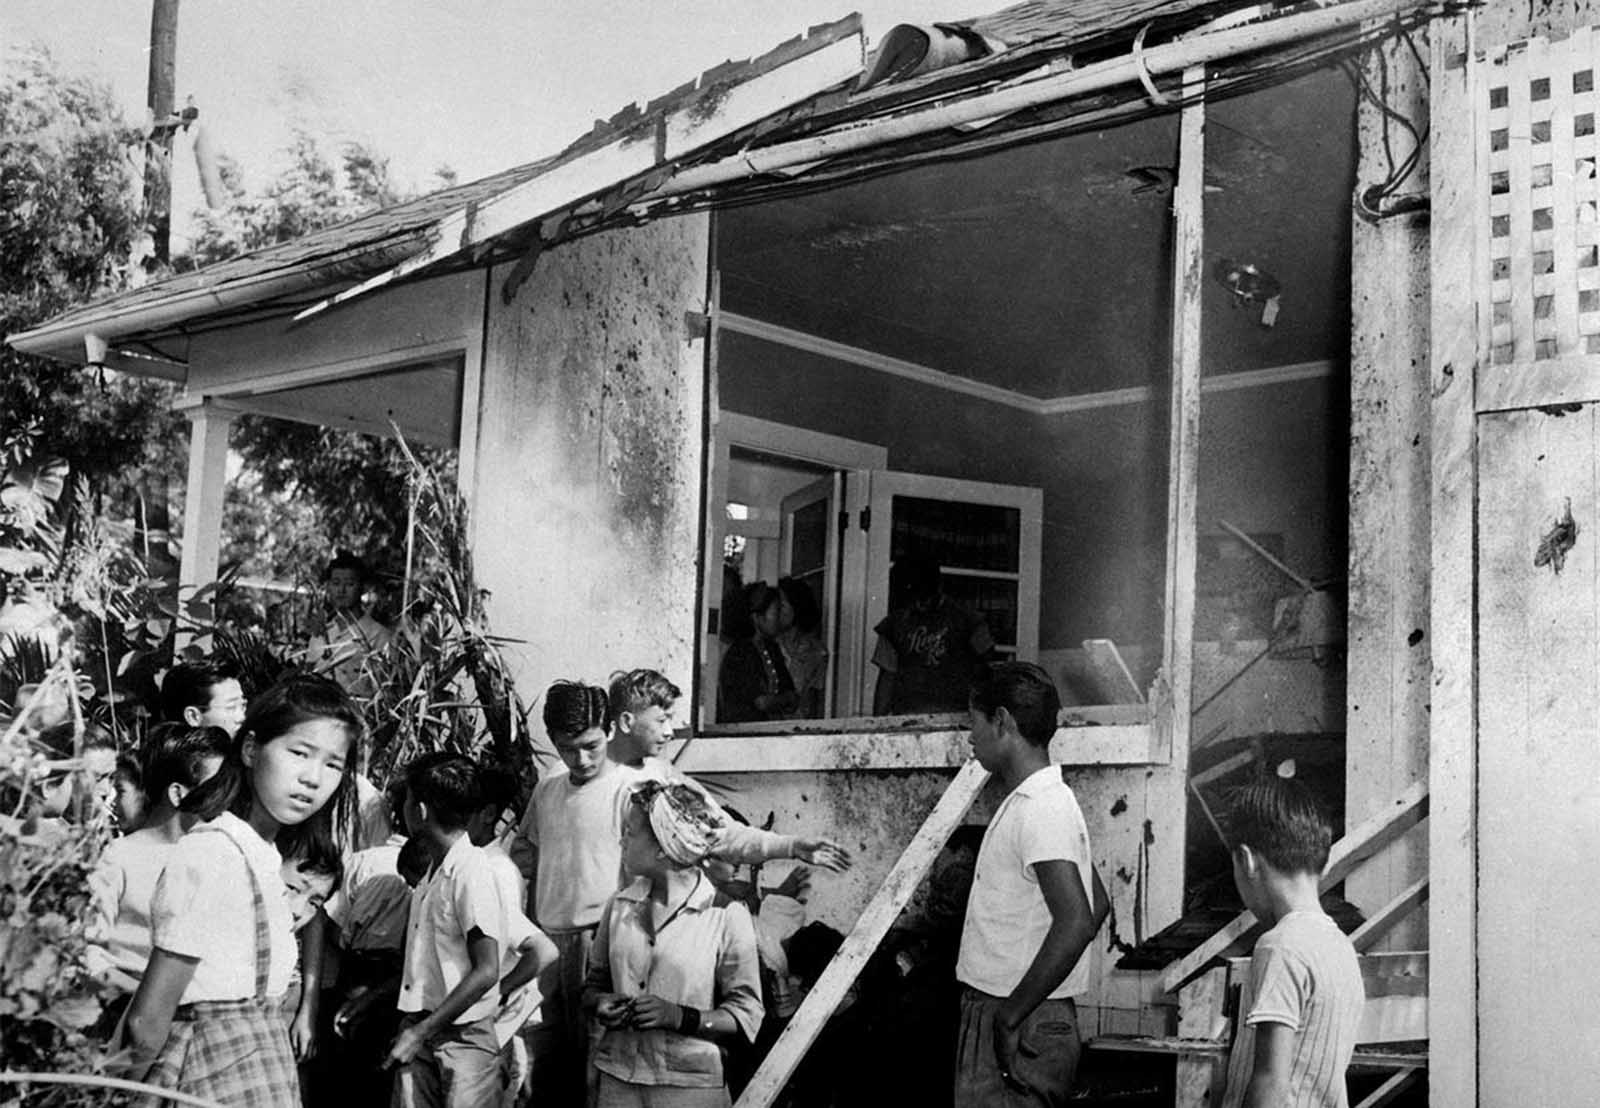 A small crowd inspects the damage, both inside and outside, after a Japanese bomb hit the residence of Paul Goo during the Japanese air raid on December 7, 1941.